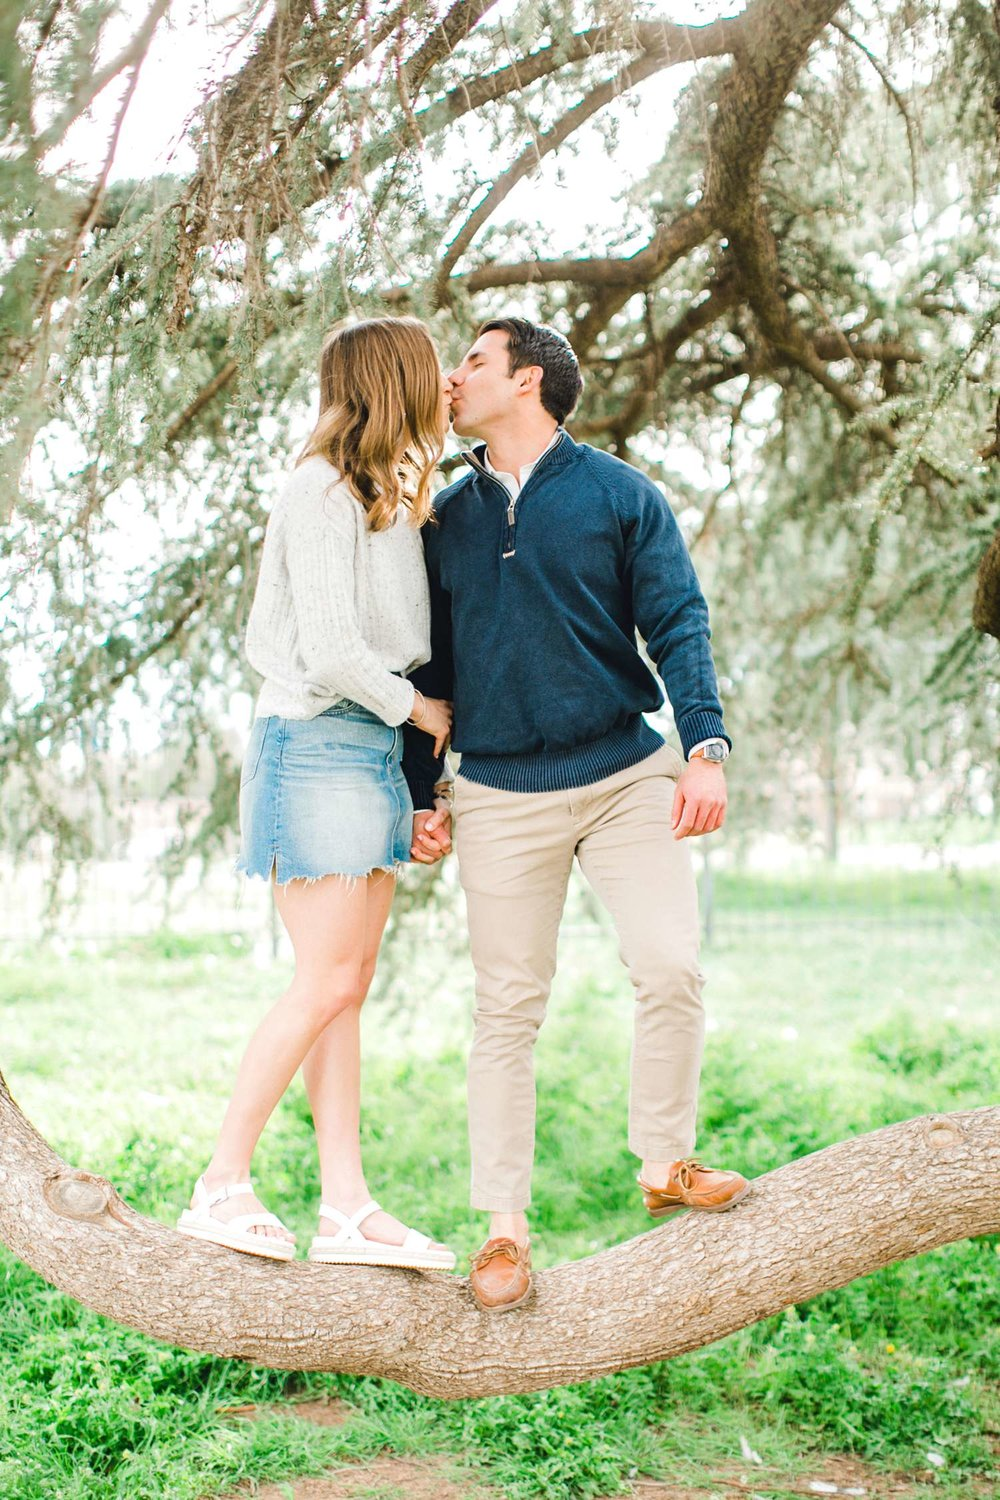 CAROLINE+CHRISTIAN+ALLEEJ+ENGAGEMENTS+LUBBOCK+WEDDING+PHOTOGRAPHER+FIRST+BAPTIST+CHURCH_0007.jpg